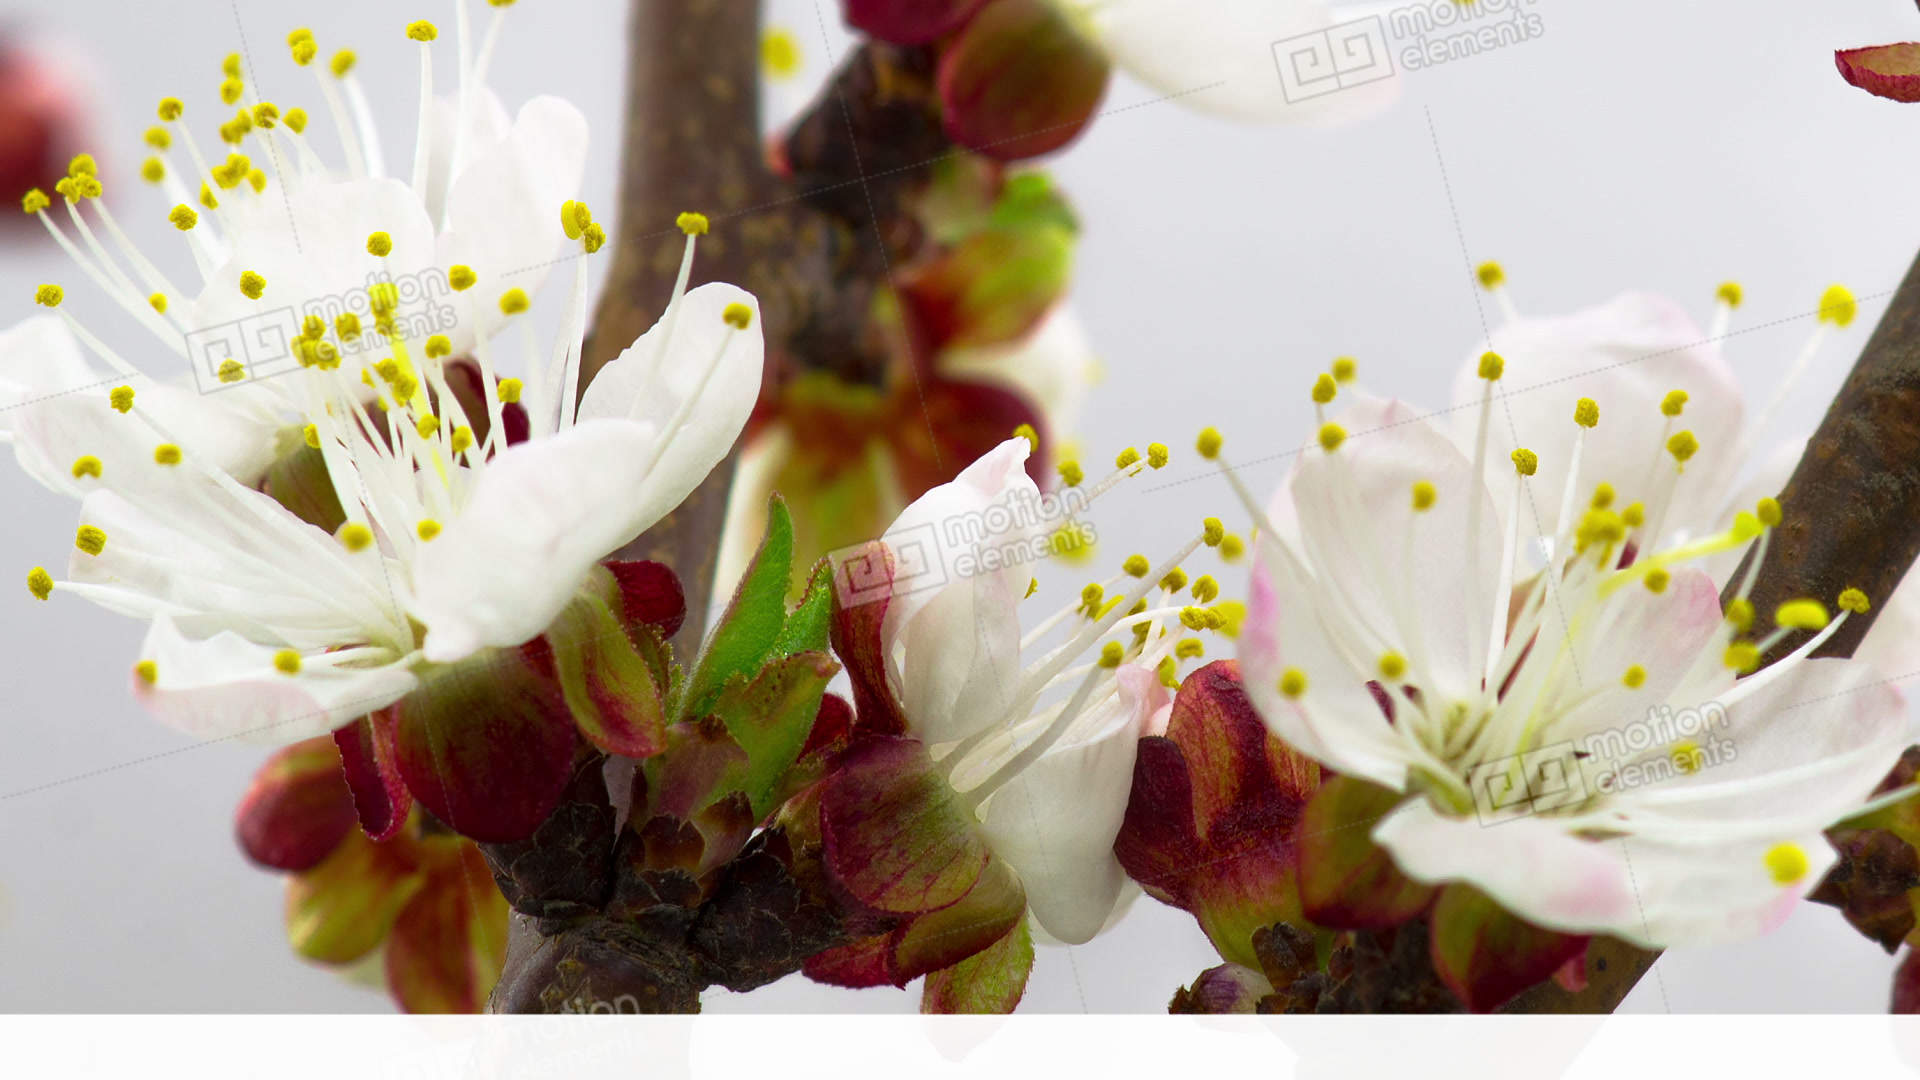 White Cherry Tree Flowers Blossoms Stock video footage | 11435016